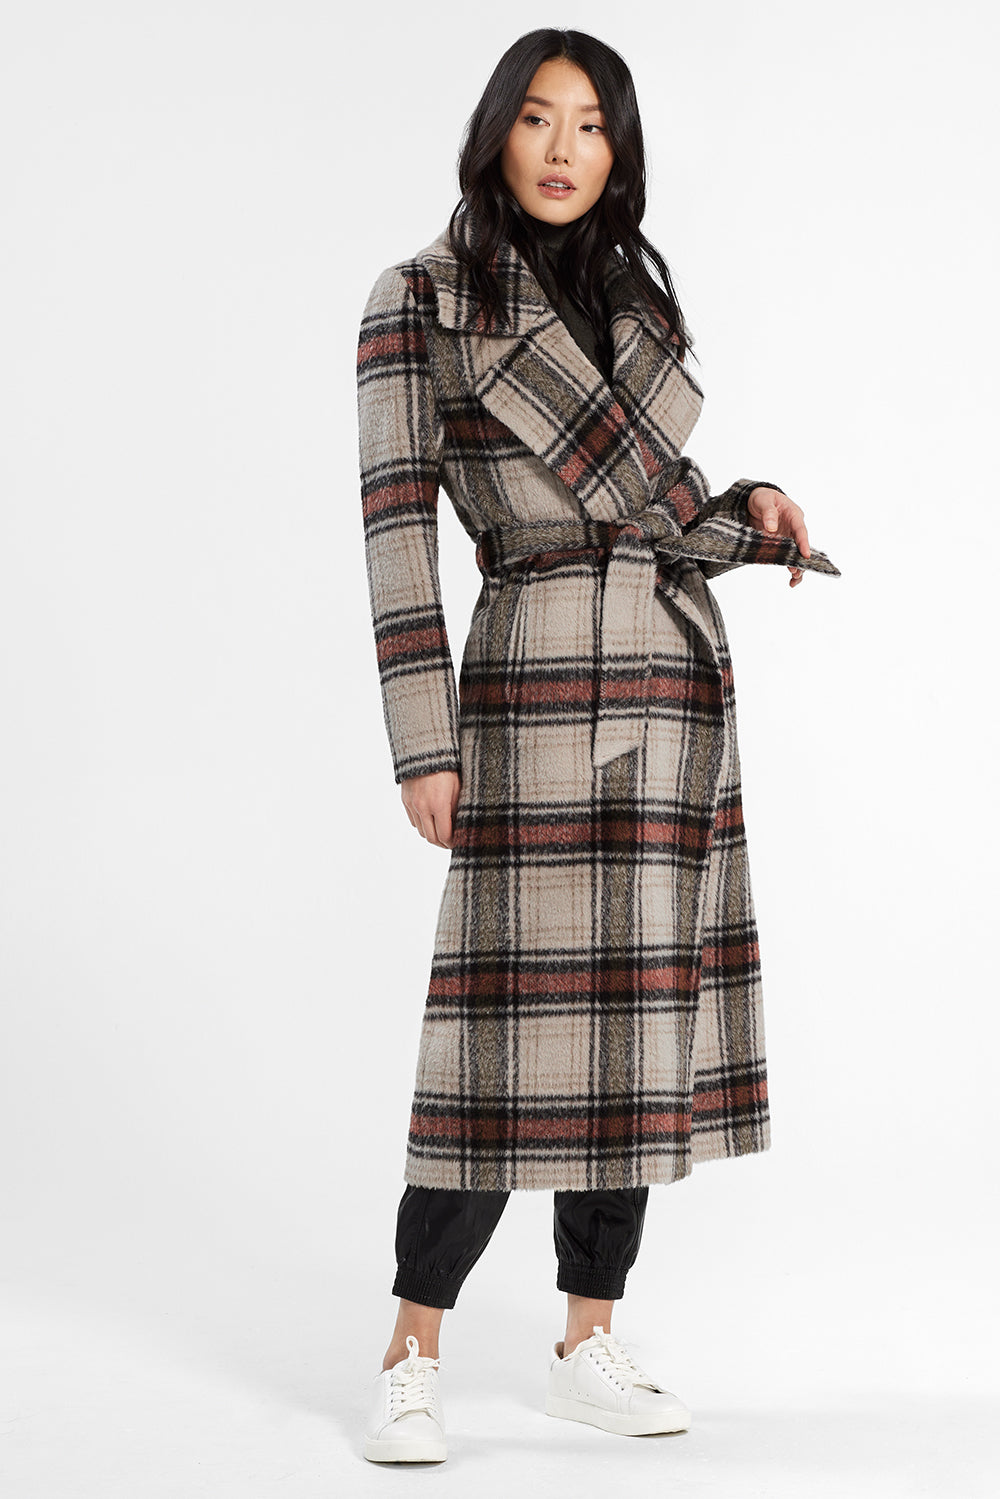 Sentaler Plaid Long Notched Collar Wrap Coat featured in Suri Alpaca and available in Sand Plaid. Seen from front.